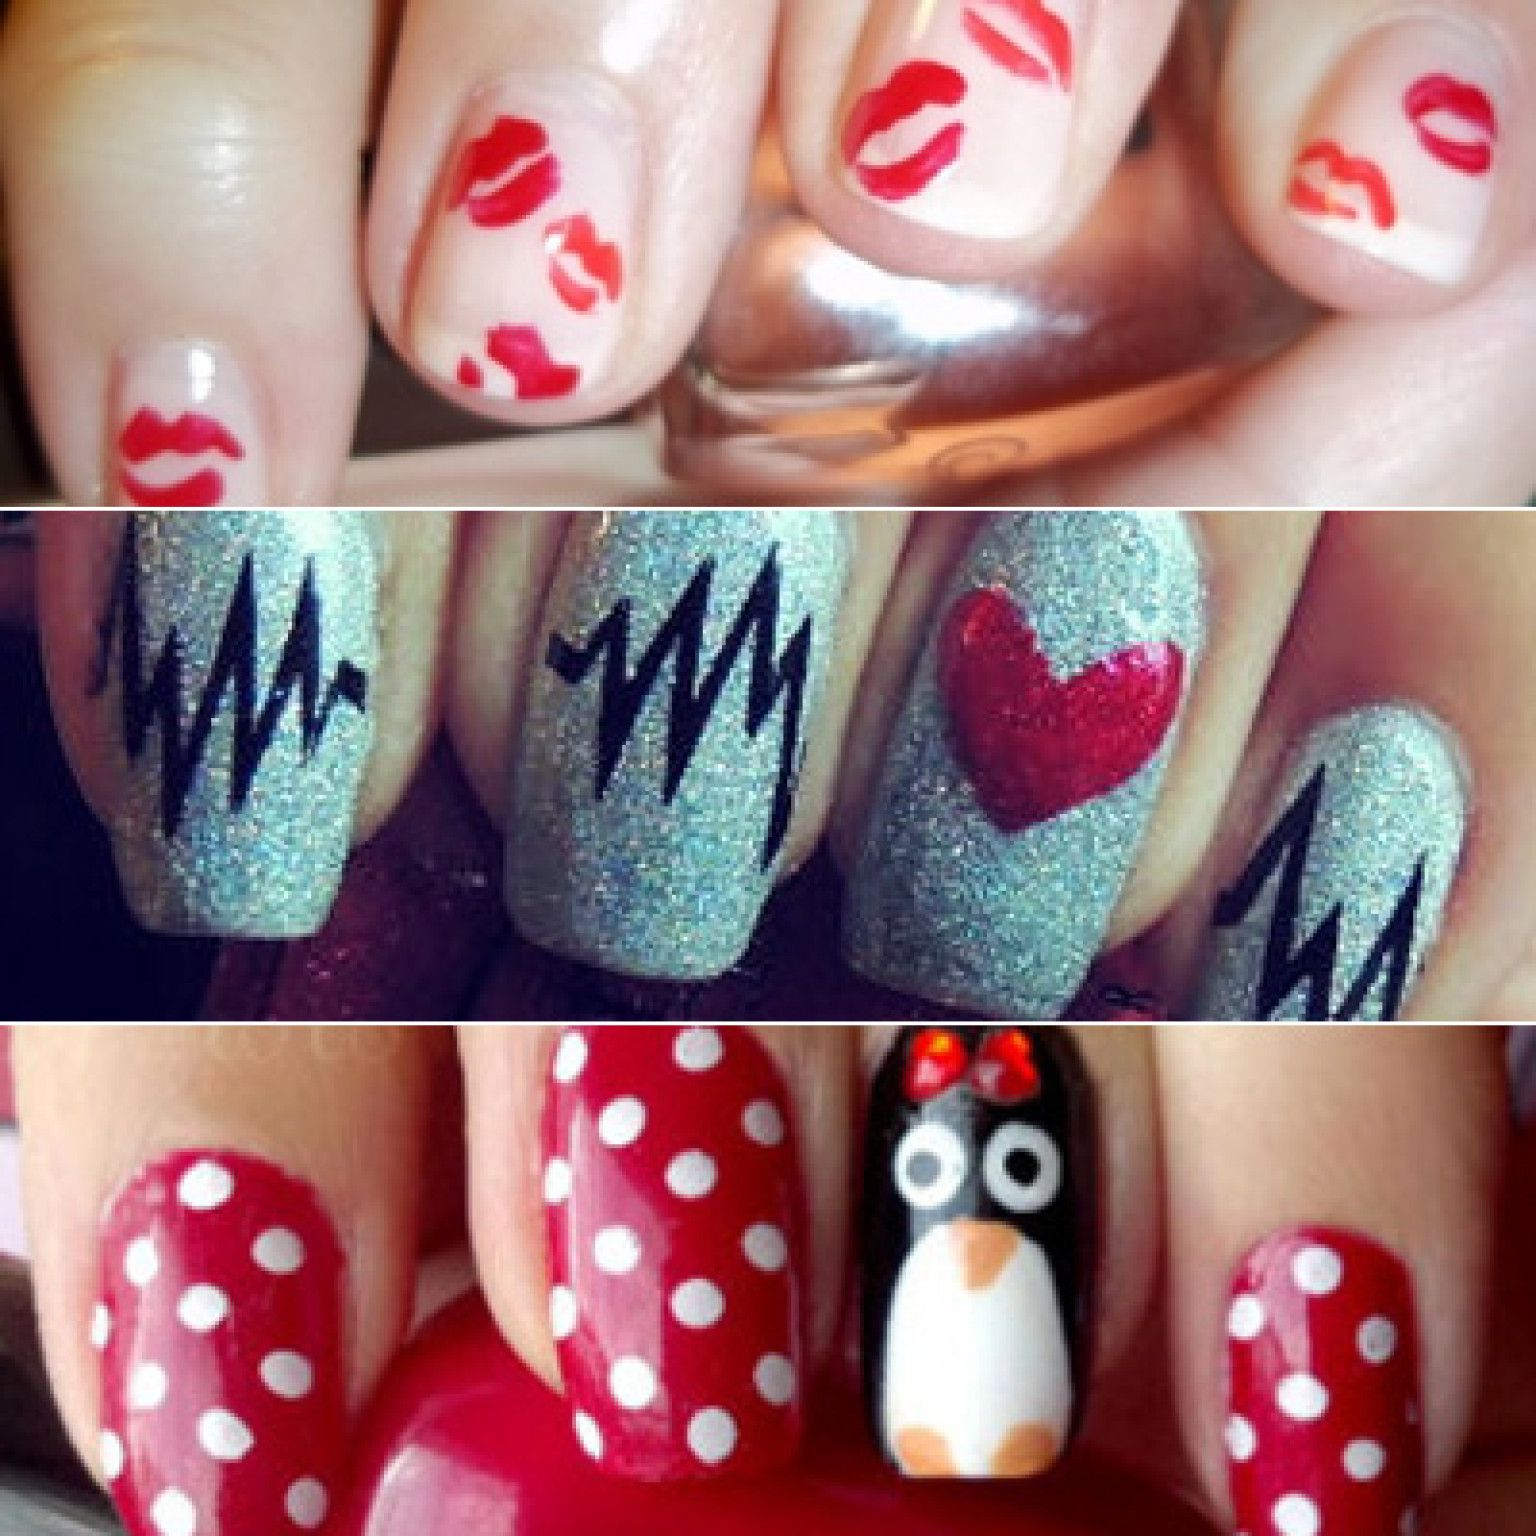 28 valentines day nail art ideas to put you in the mood for love 28 valentines day nail art ideas to put you in the mood for love photos prinsesfo Choice Image